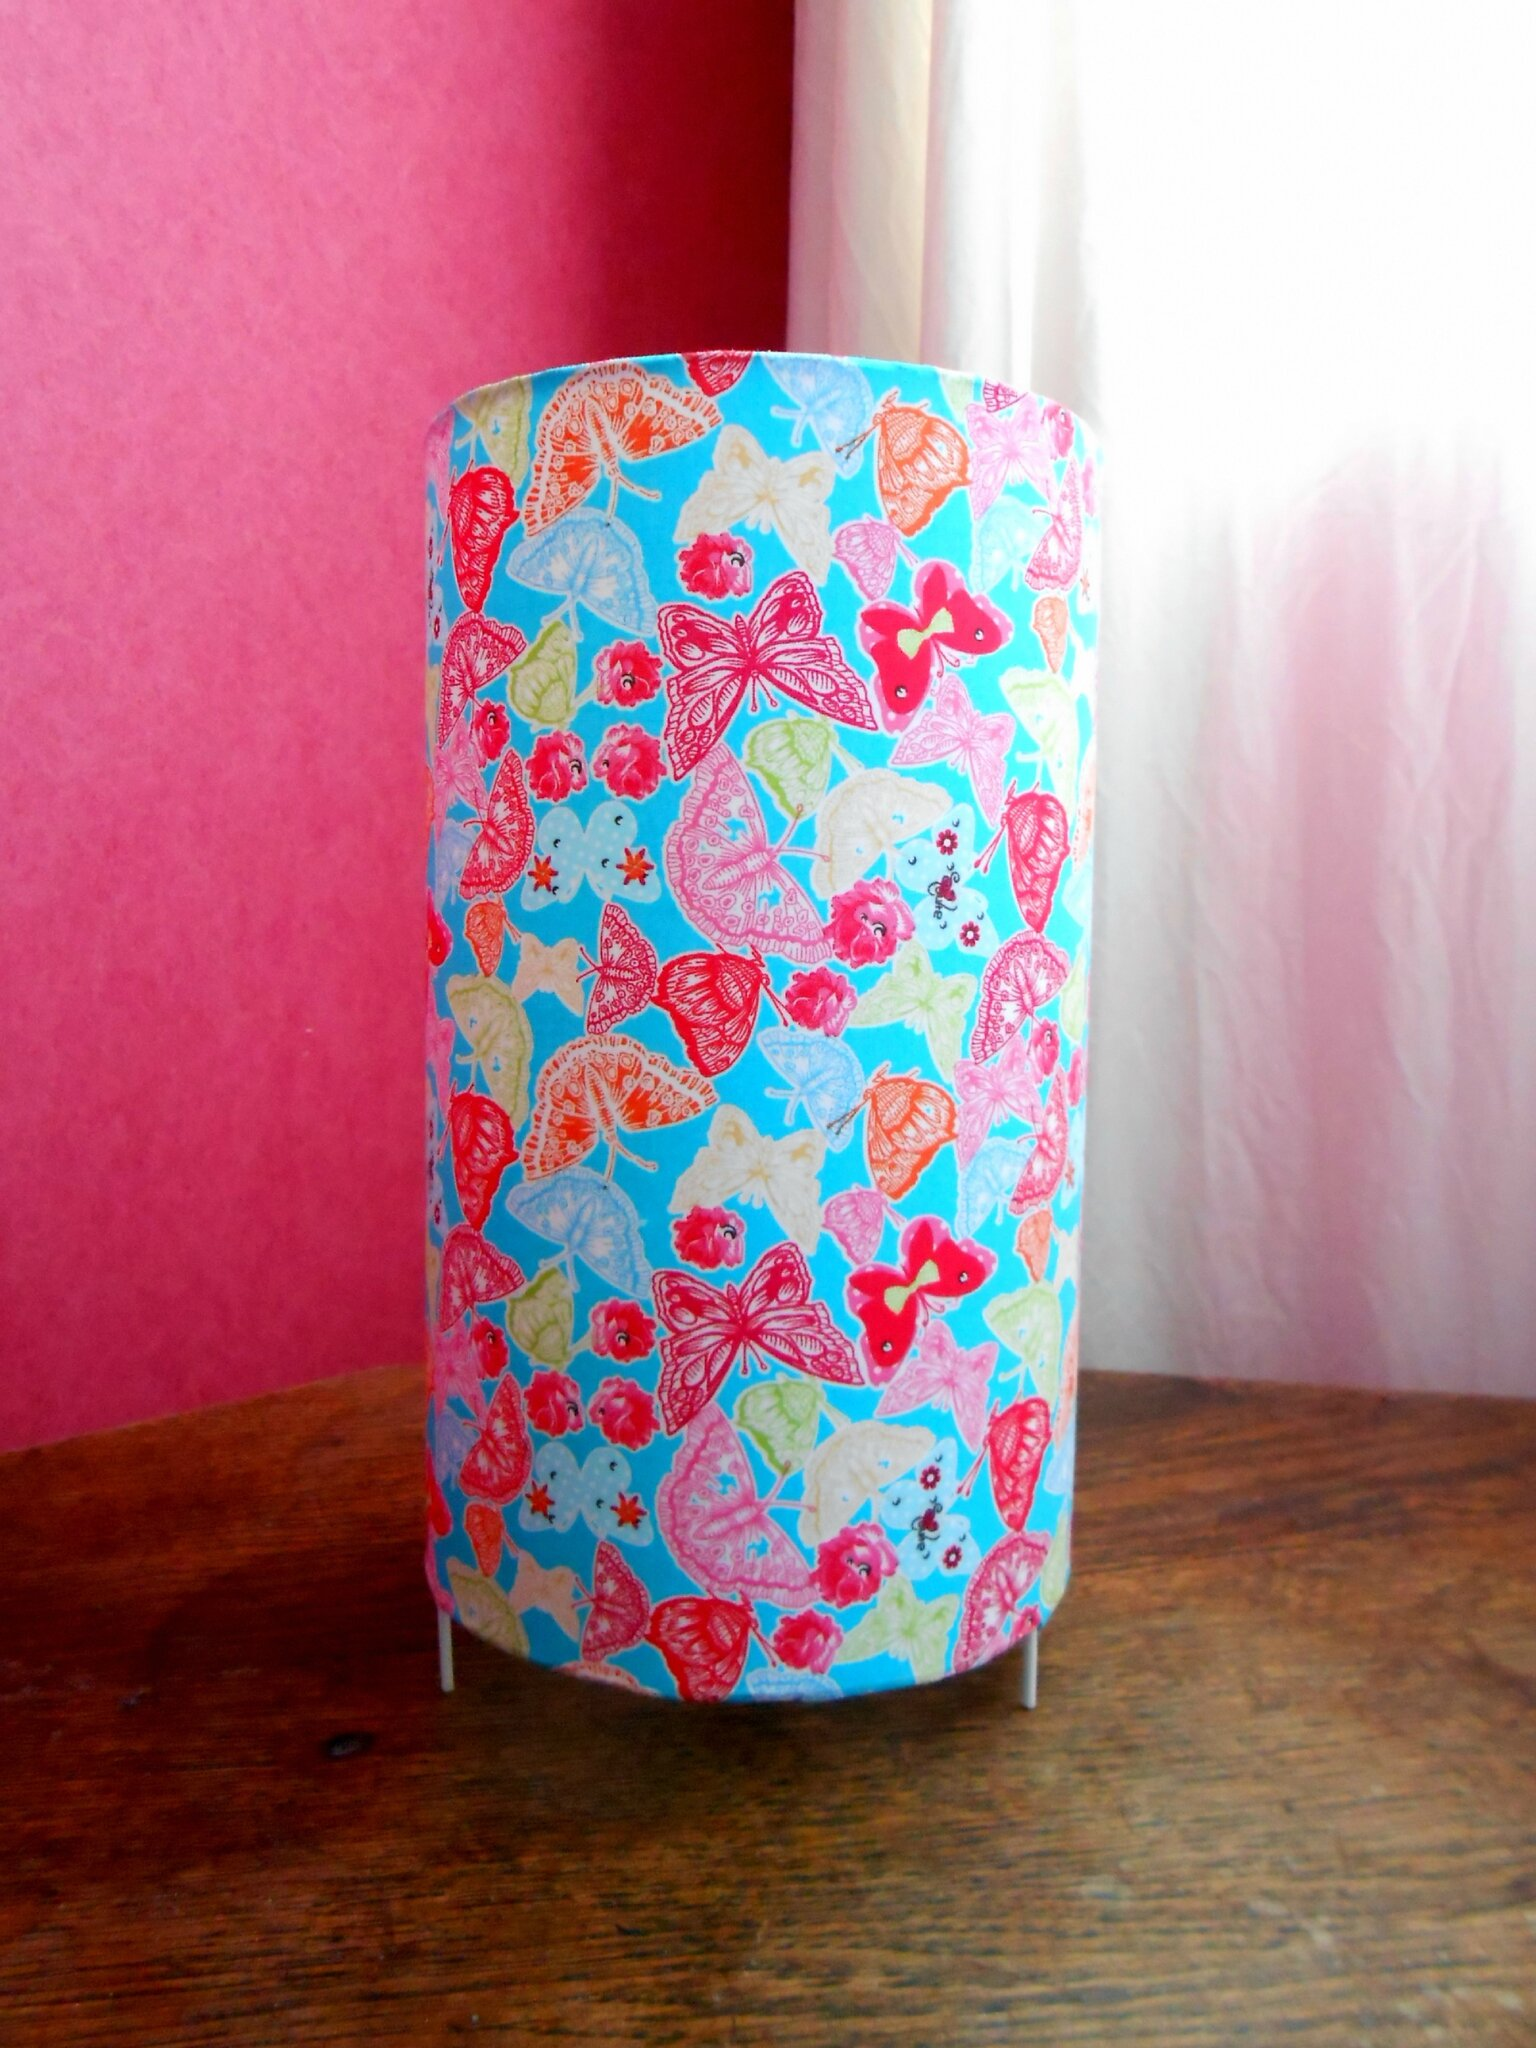 lampe papillons fond turquoise